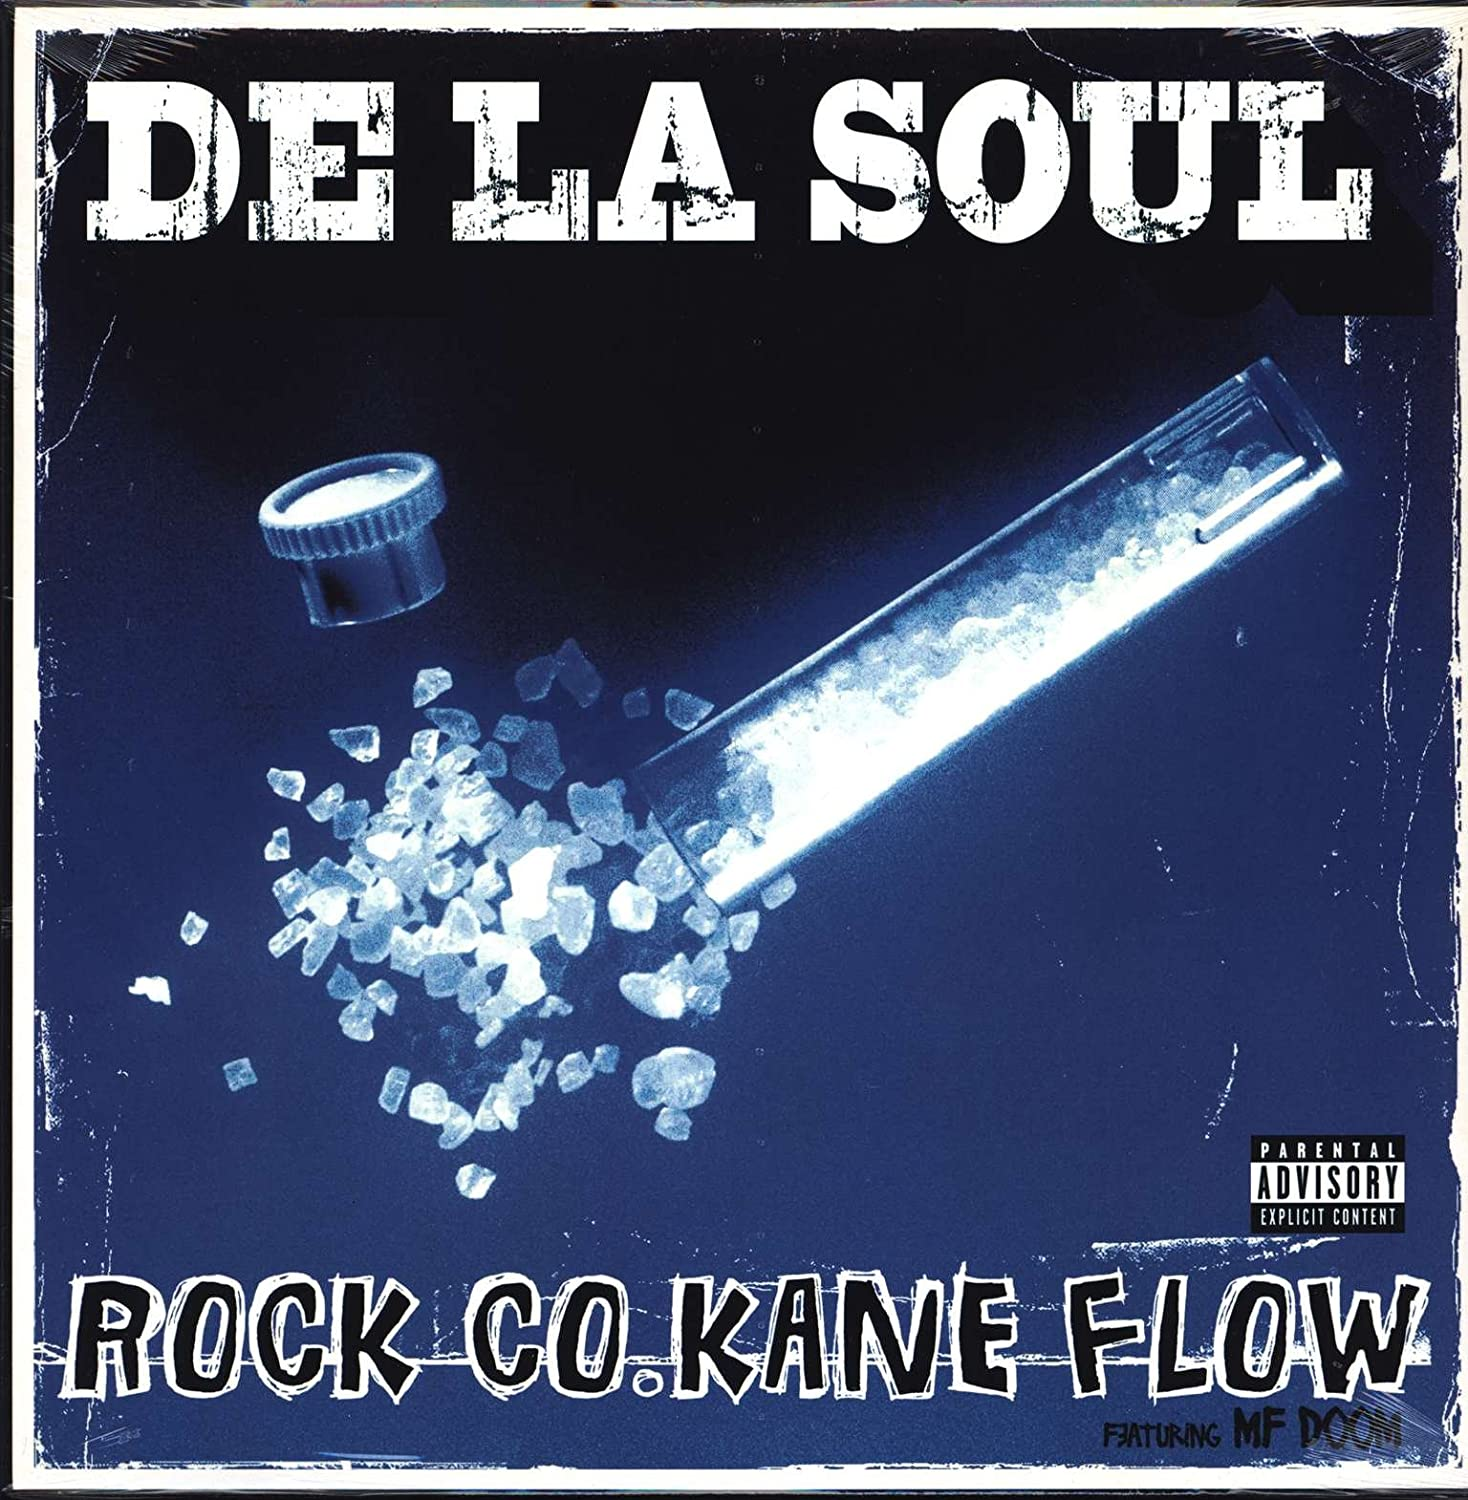 Rock Co. Kane Flow [12 inch Analog]                                                                                                                                                                                                                                                                                                                                                                                                <span class=